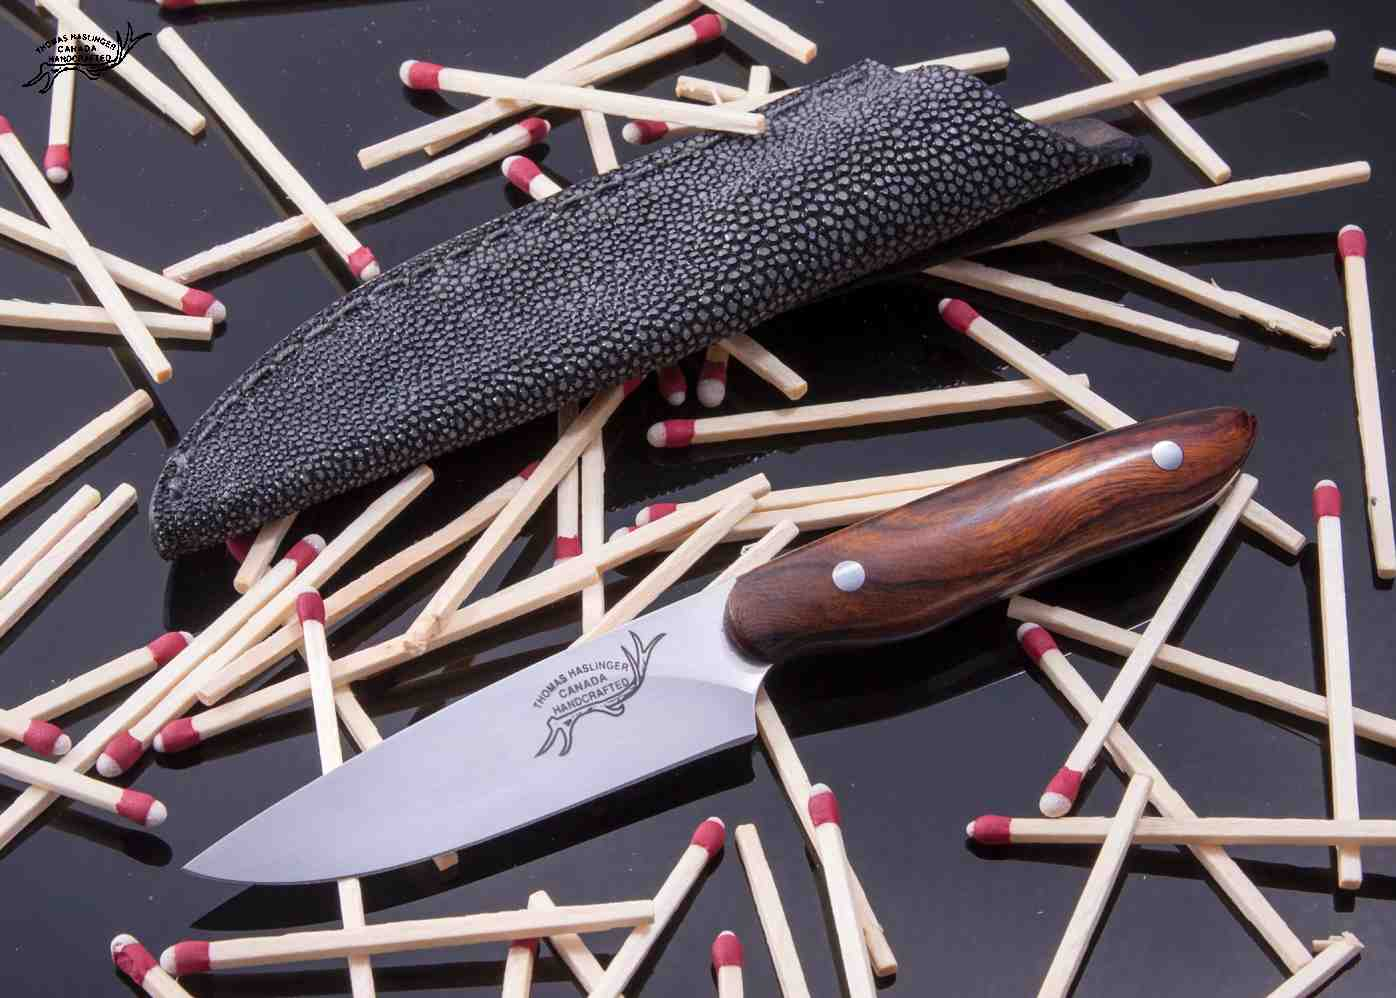 Desert Ironwood and BG42 Stainless Bird and Trout Knife with Shagreen Stingray Sheath